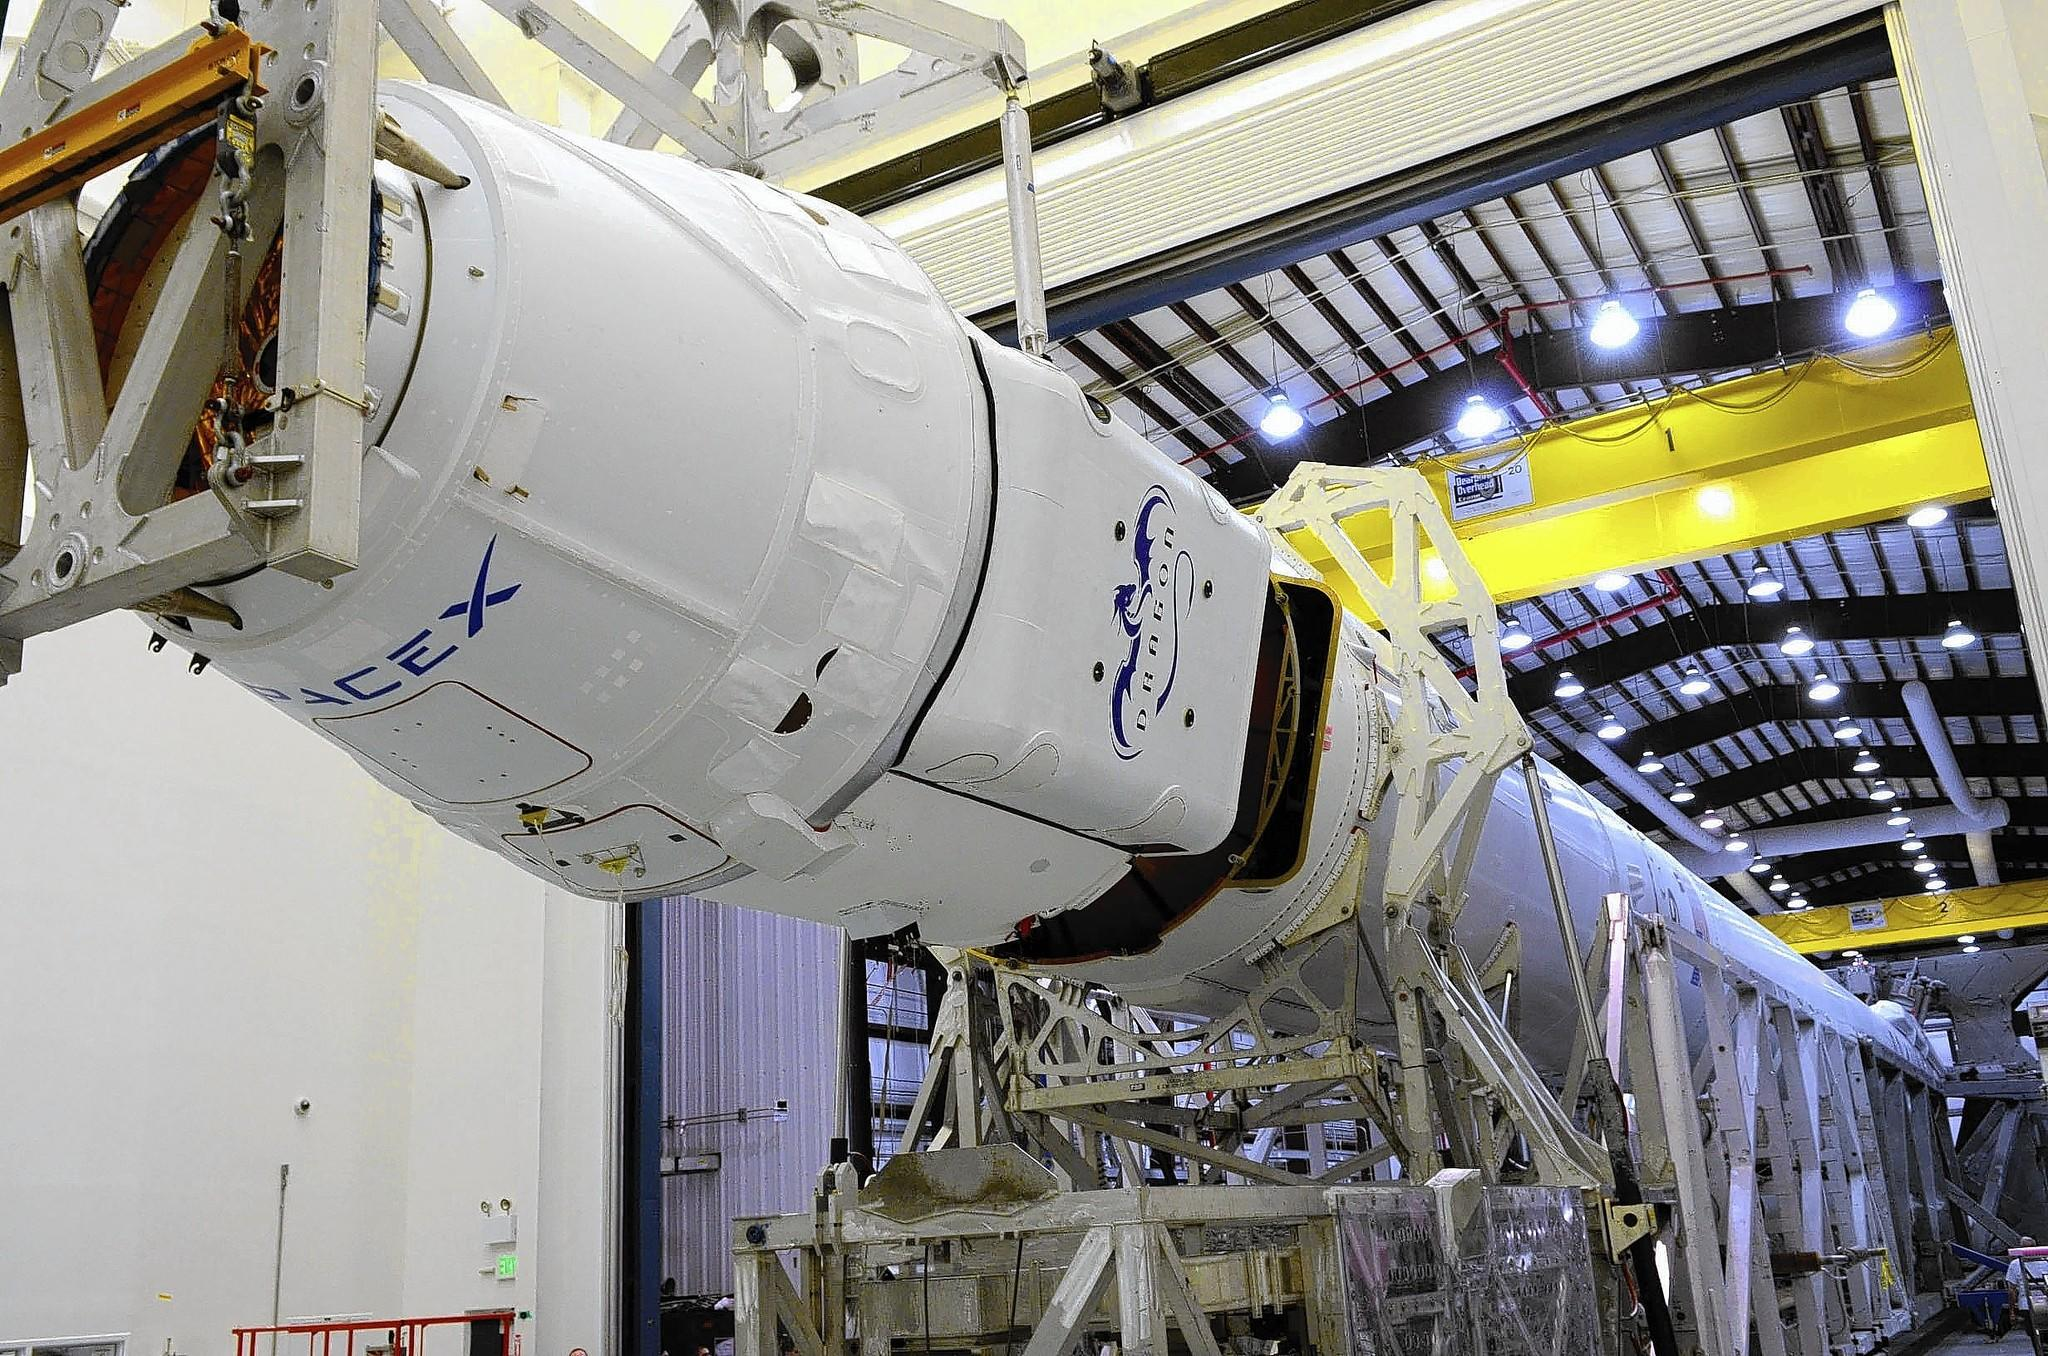 SpaceX asked lawmakers to clarify its tax status after the Los Angeles County Assessor audited the company in 2012 and issued an assessment dating to the 2007-08 fiscal year. Above, a SpaceX Dragon capsule is mated to the company's Falcon 9 rocket.